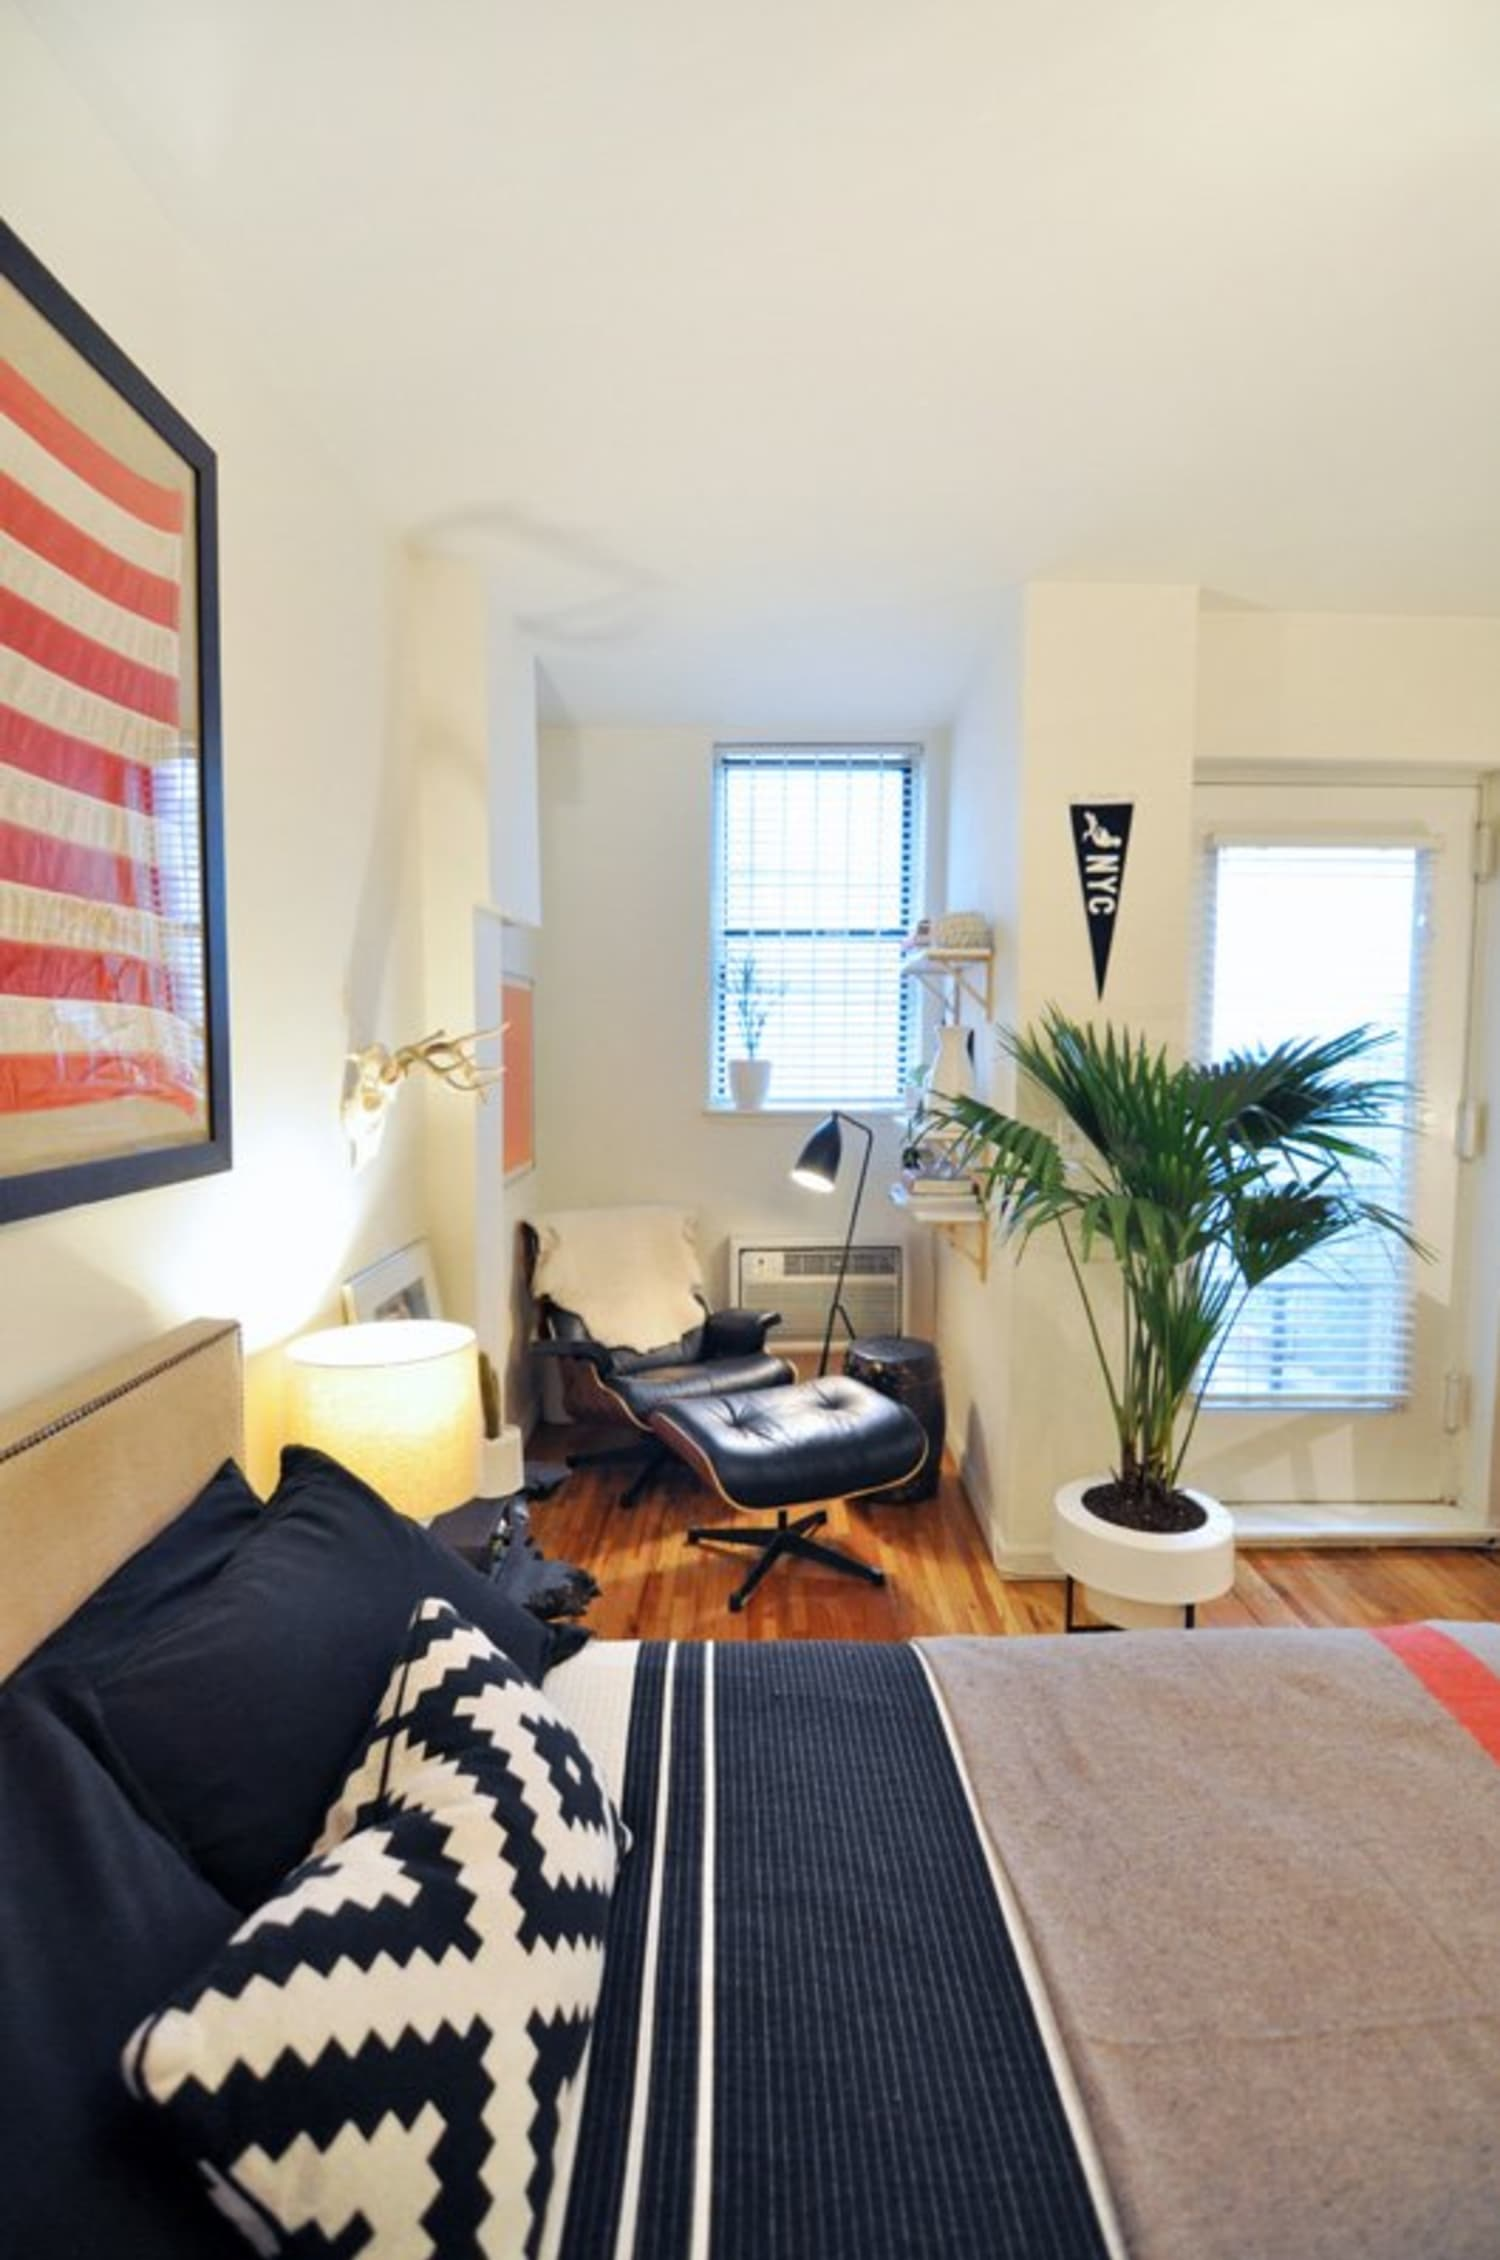 Living With Your Parents How To Turn Your Room Into A Mini Apartment Apartment Therapy